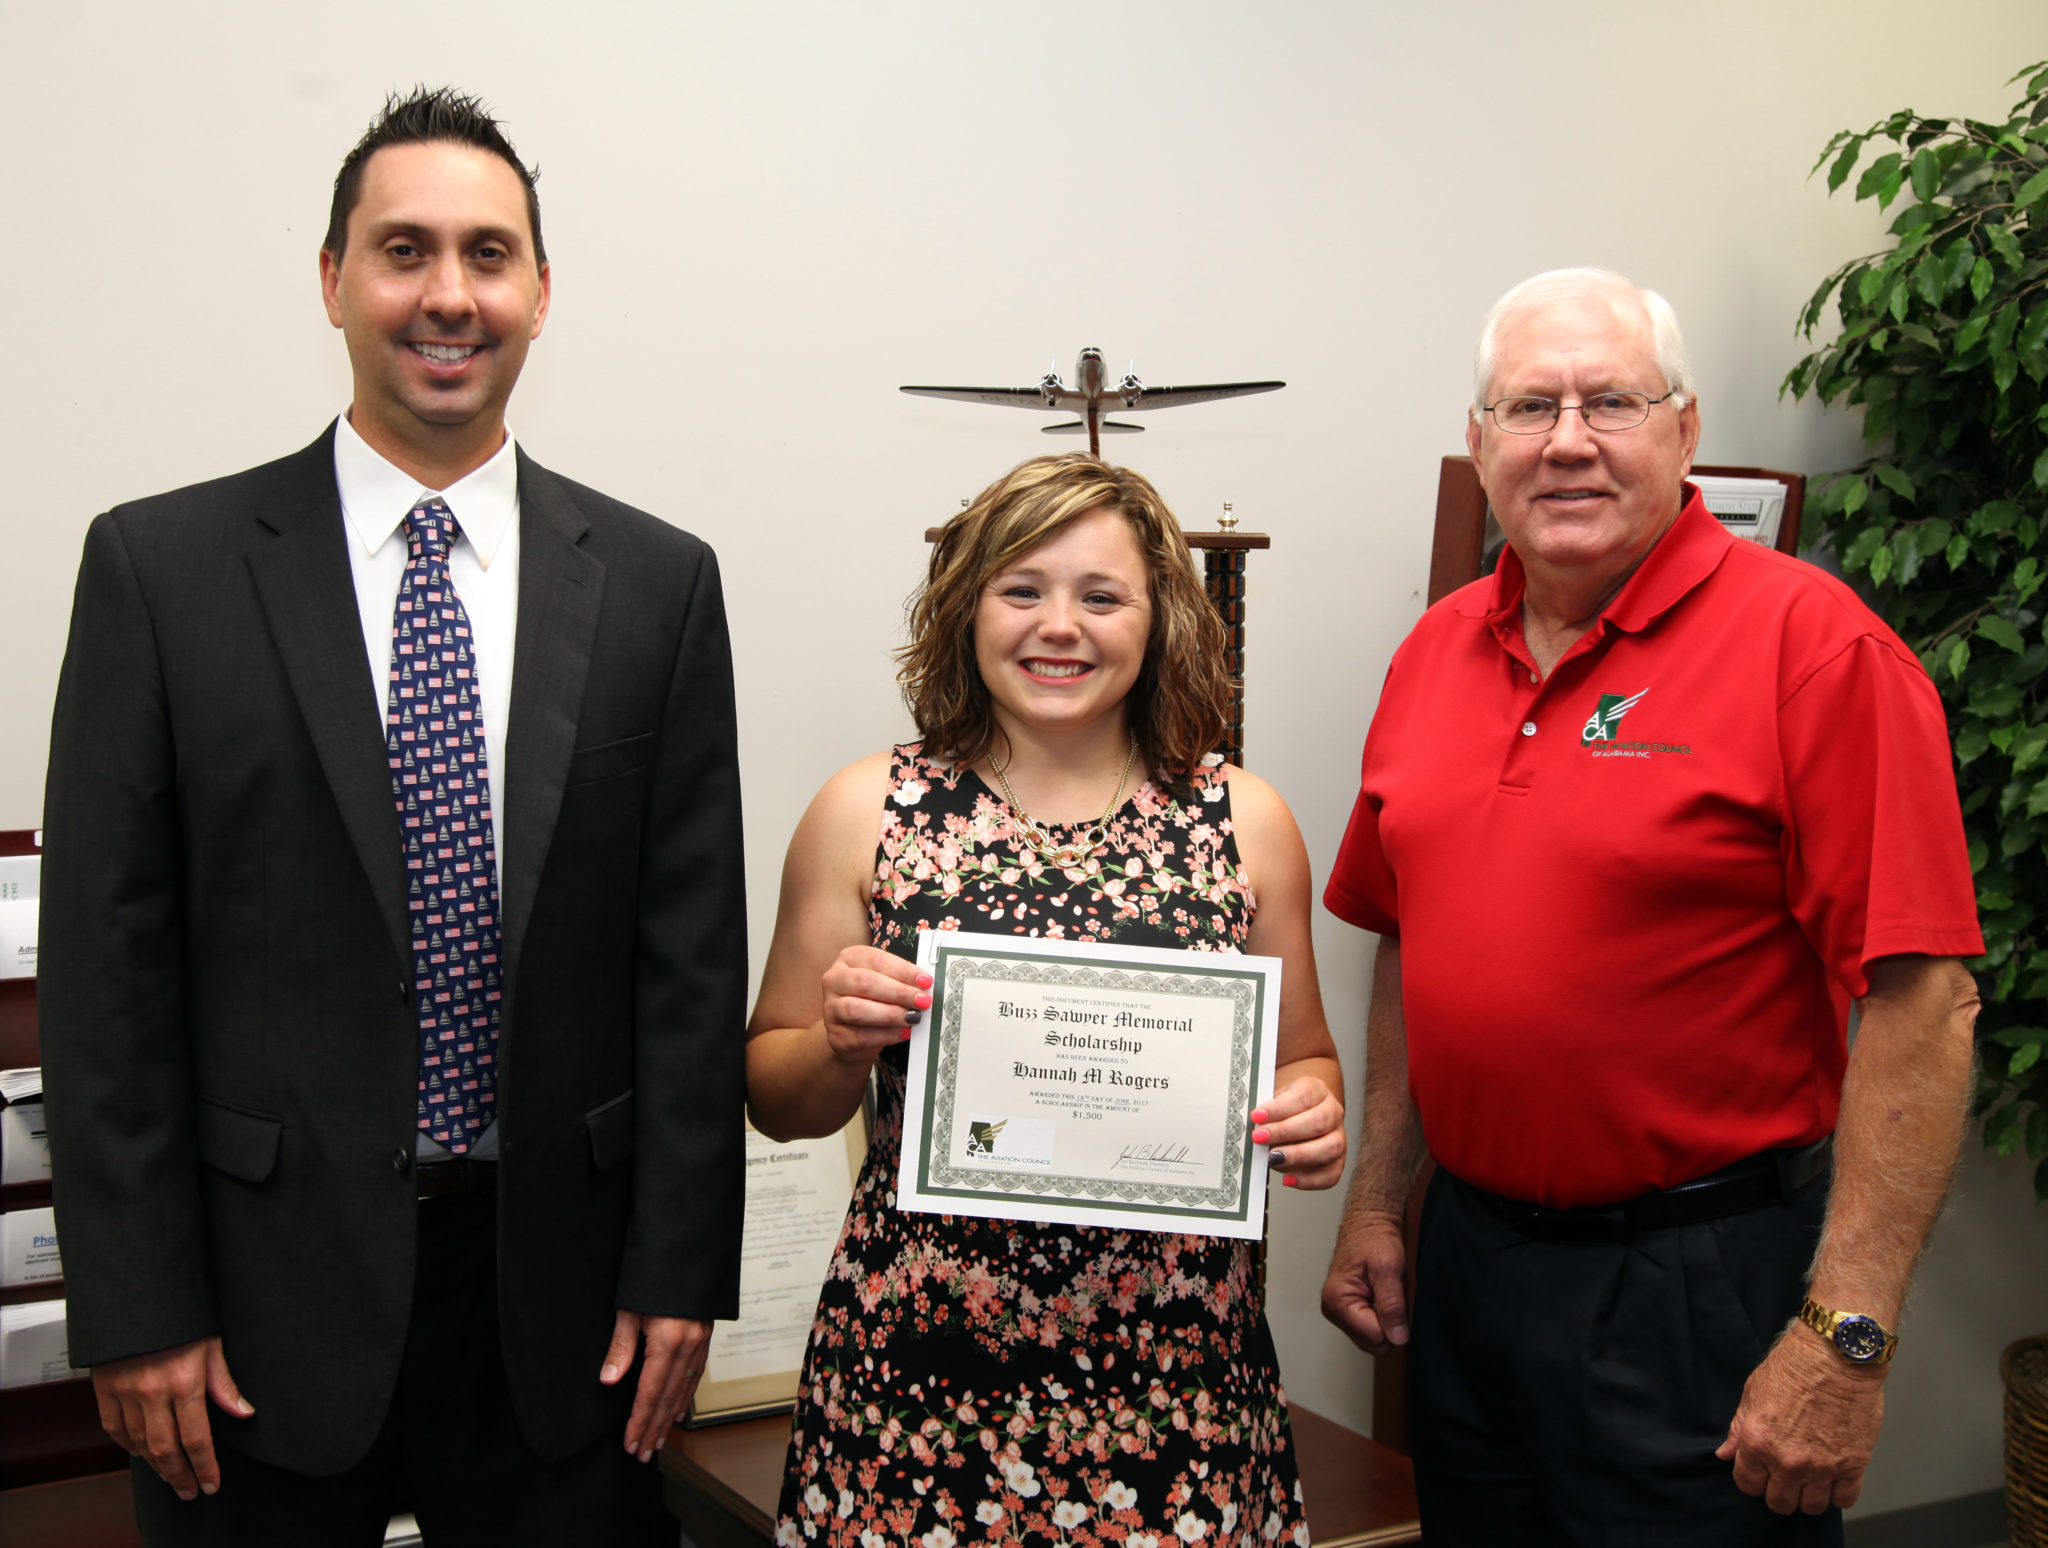 First Annual Buzz Sawyer Memorial Scholarship awarded to AAC Student